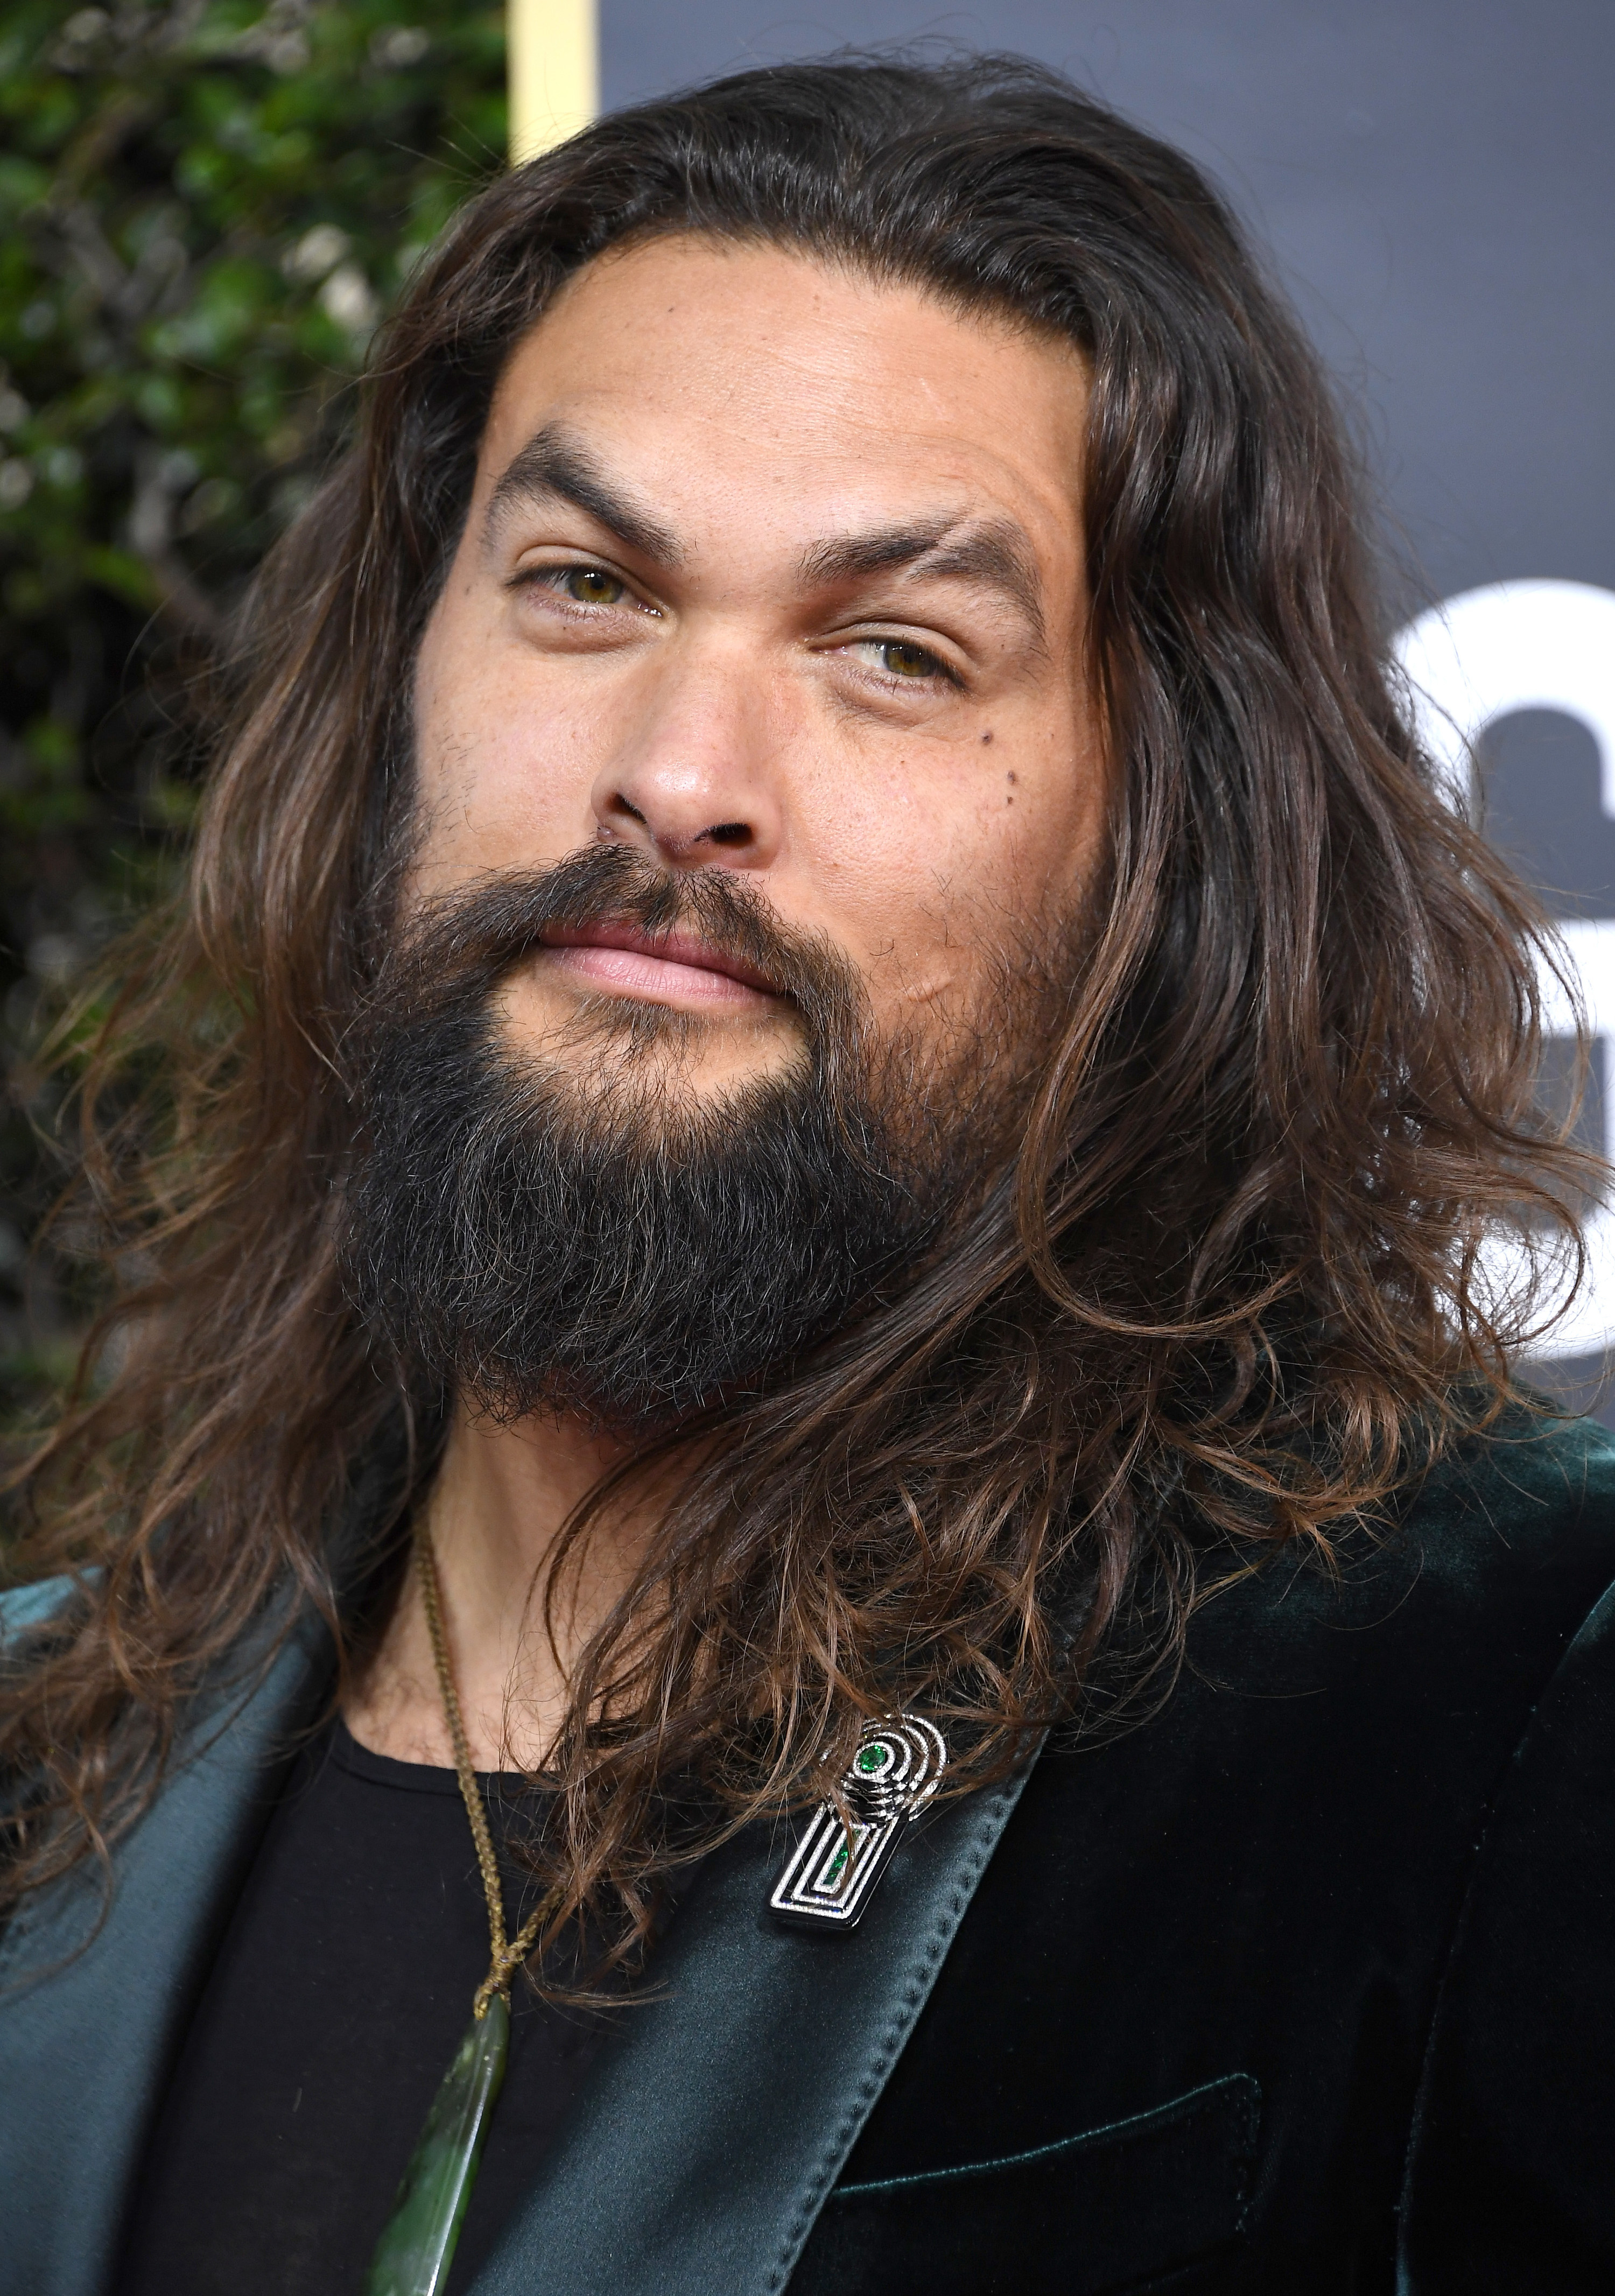 Jason Momoa is pictured on the red carpet at the Golden Globe Awards in 2020